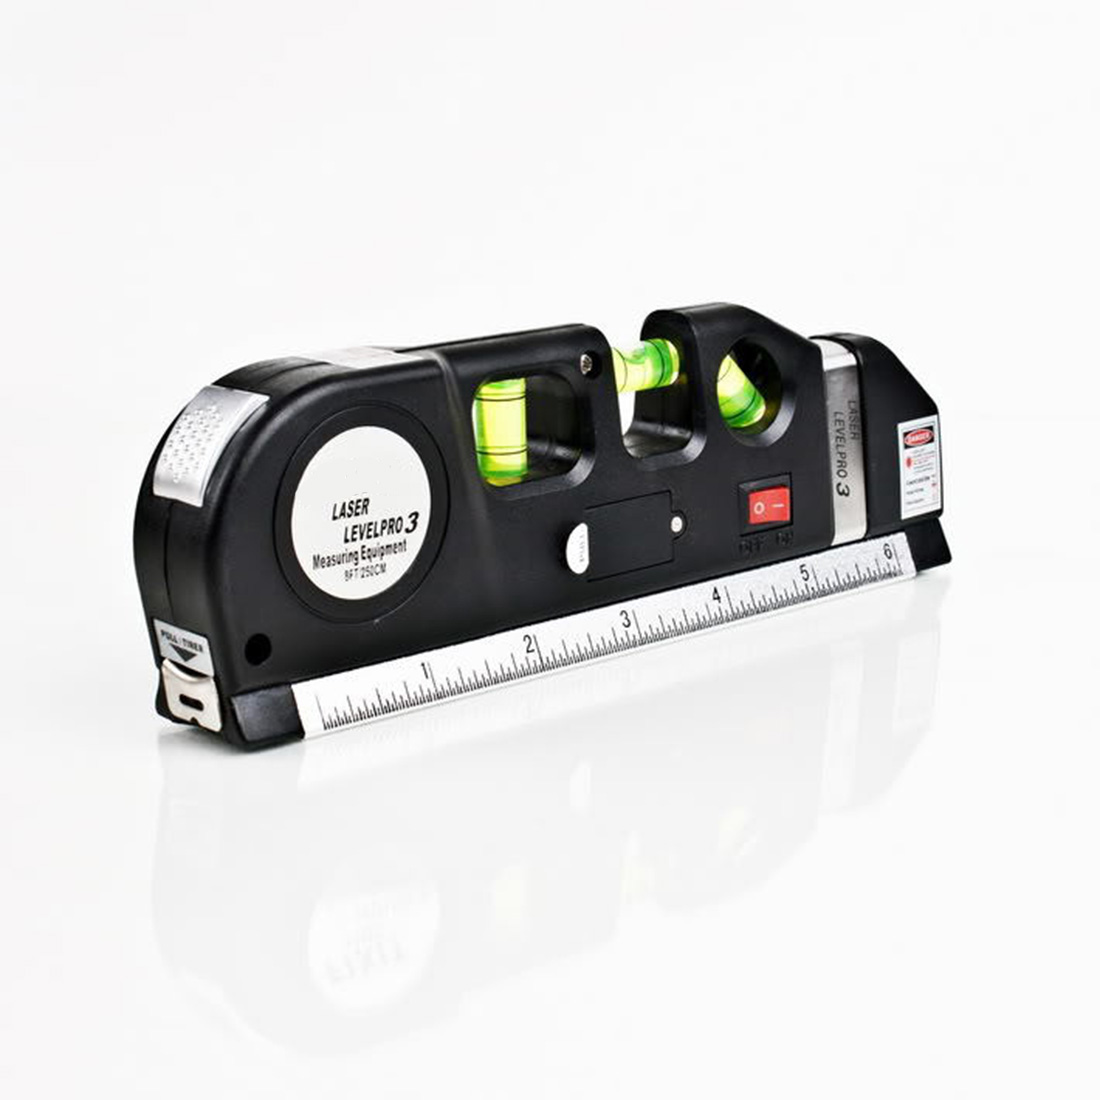 Multipurpose Level Laser Horizon Vertical Measure Tape 8FT Aligner Bubbles Ruler Tool Multipurpose Measure Level Laser